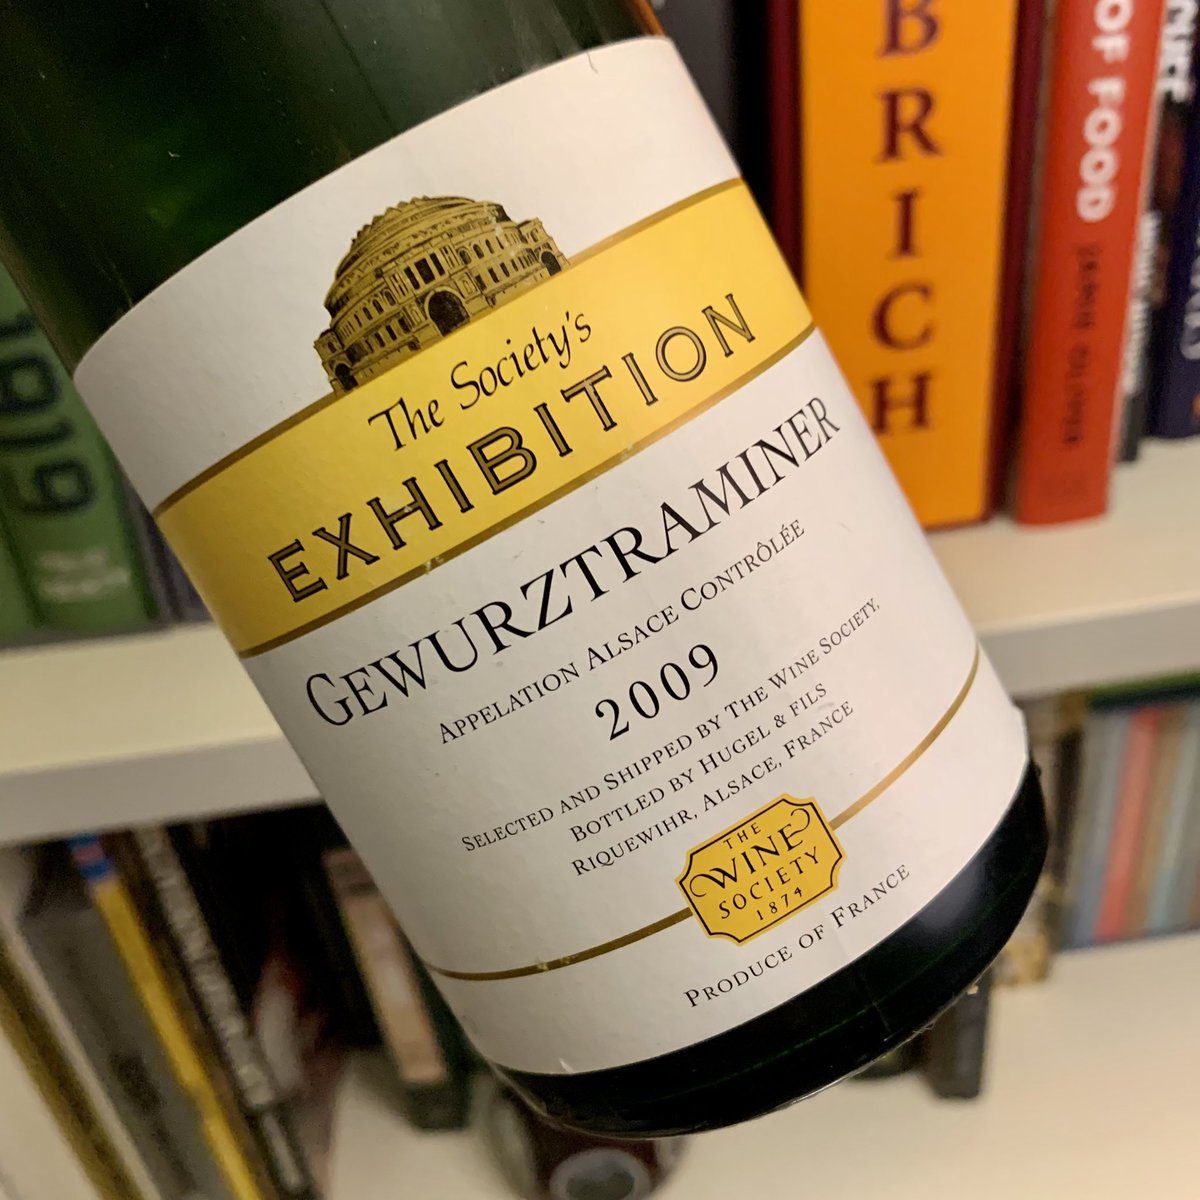 Sounds divine! We're now onto the 2017 vintage if anyone would like to stock up and see for yourself how this lovely Alsace gewurz ages:  https://t.co/wiRPpNj1wB